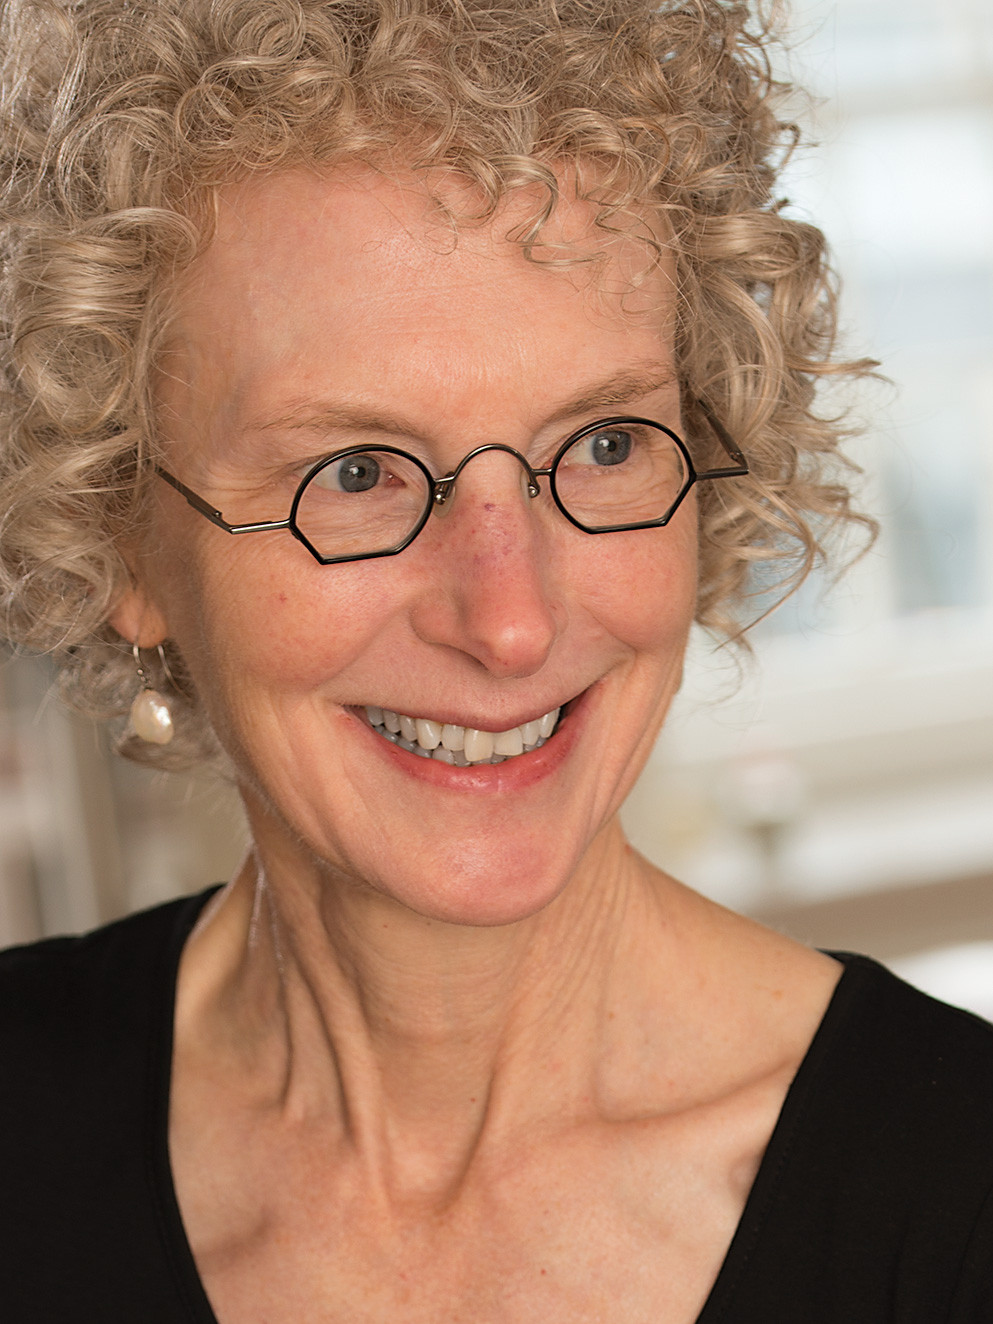 woman with curly blond hair wearing glasses and smiling